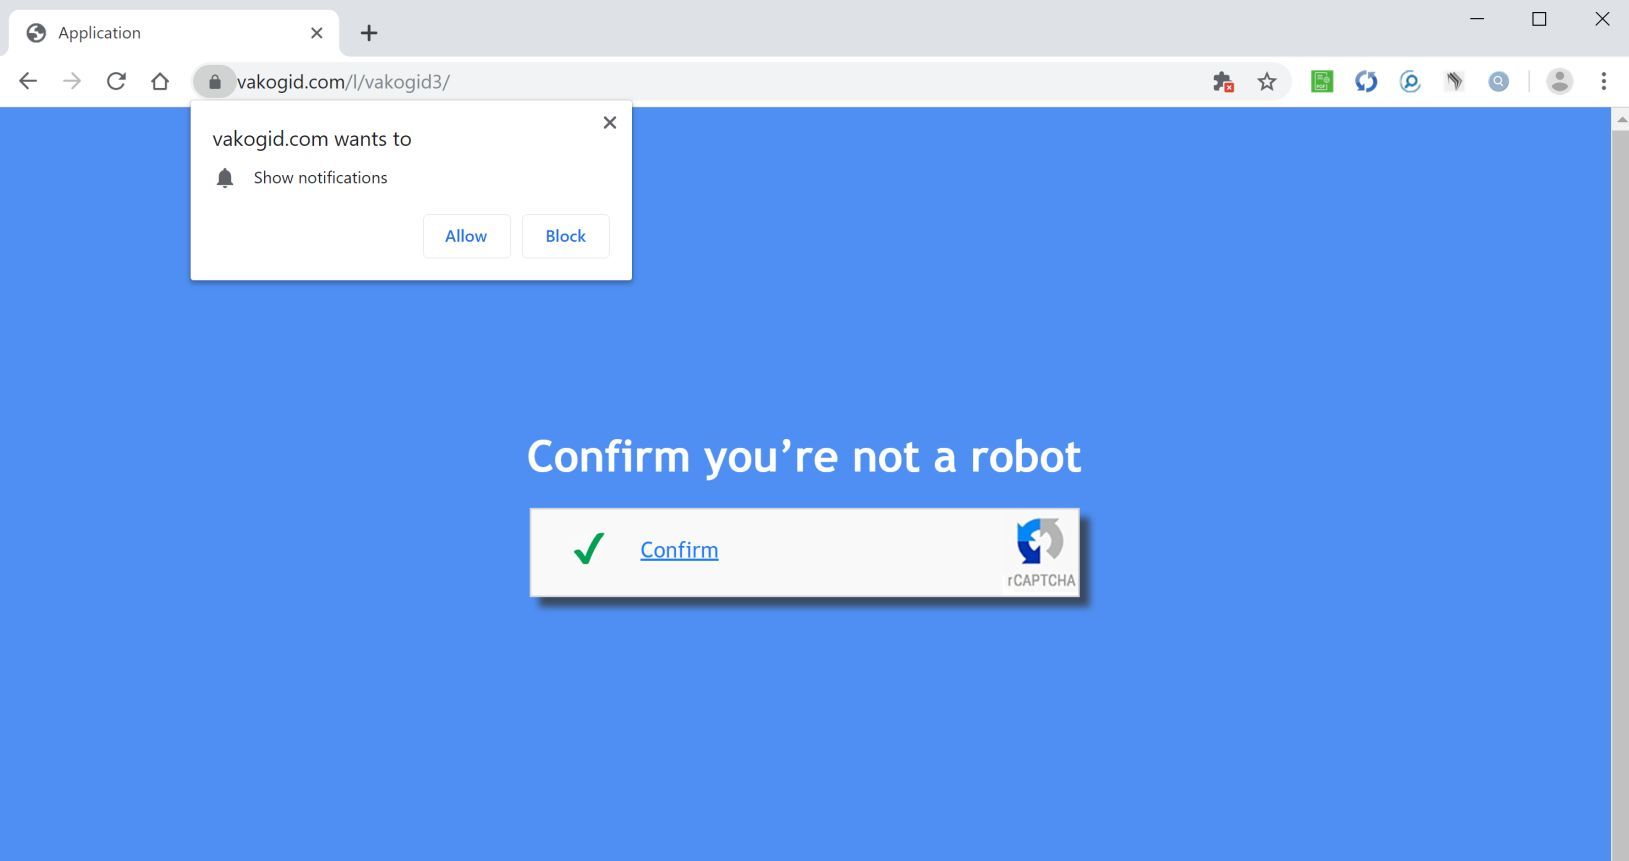 Image: Chrome browser is redirected to Vakogid.com